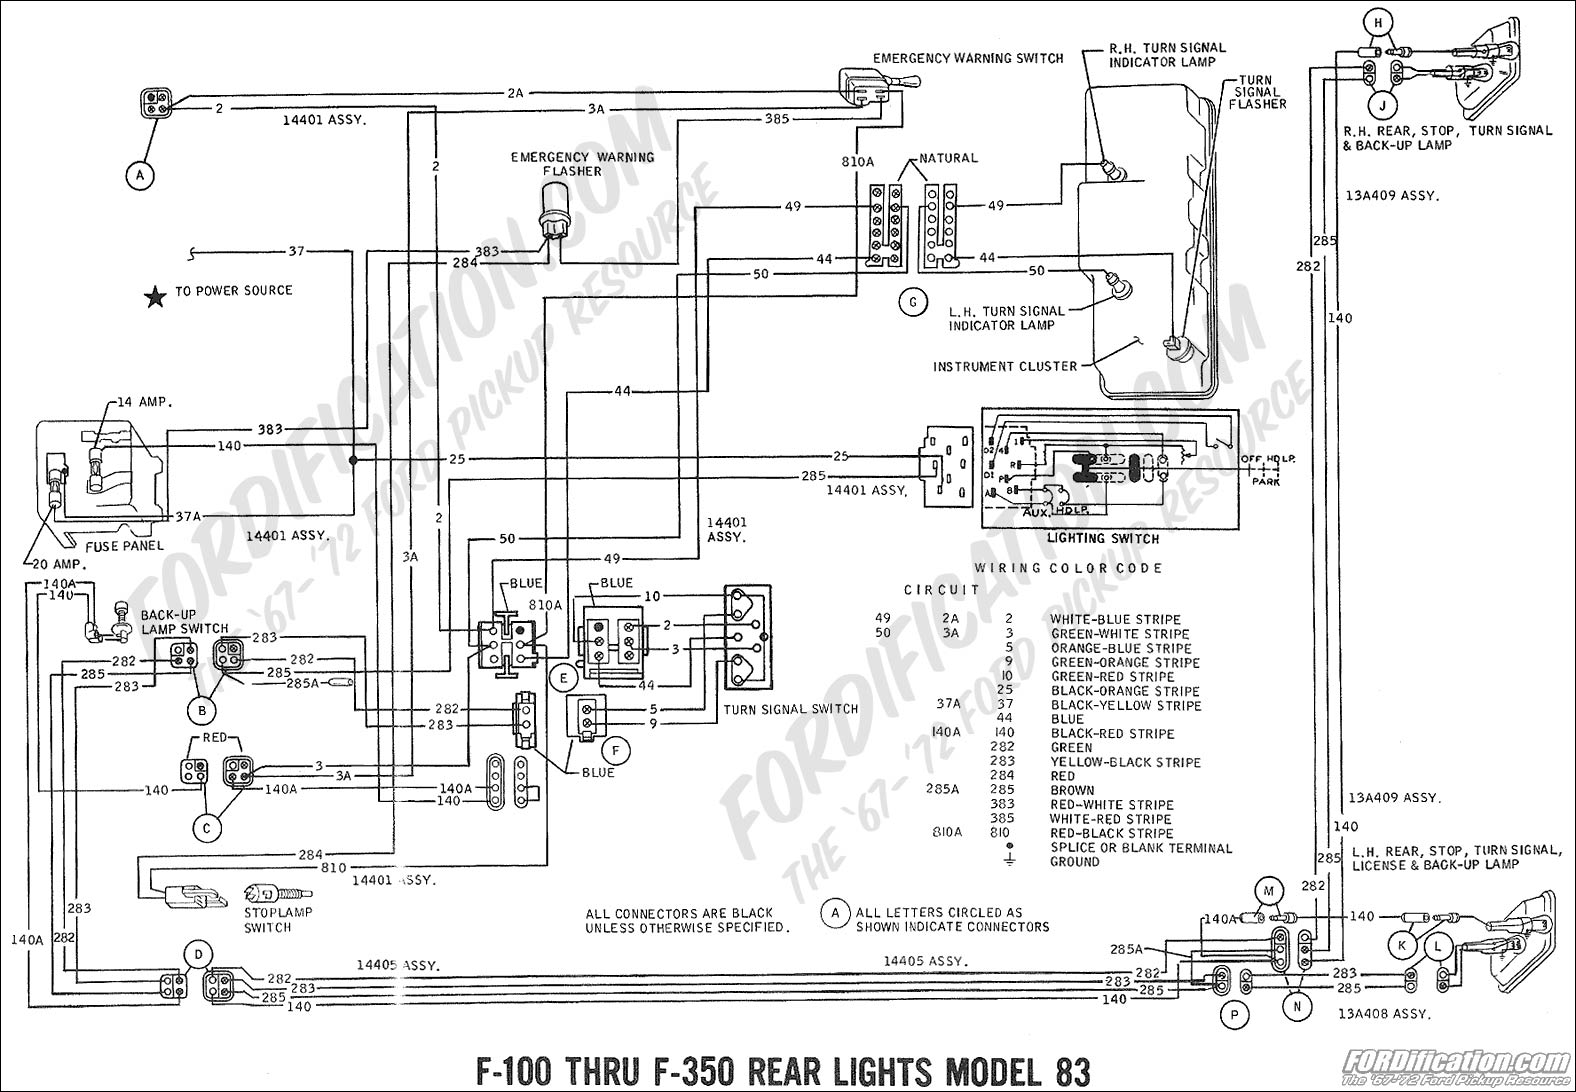 wiring_69rearlights mdl83 2 ford truck technical drawings and schematics section h wiring 1969 mustang wiring harness diagram at alyssarenee.co